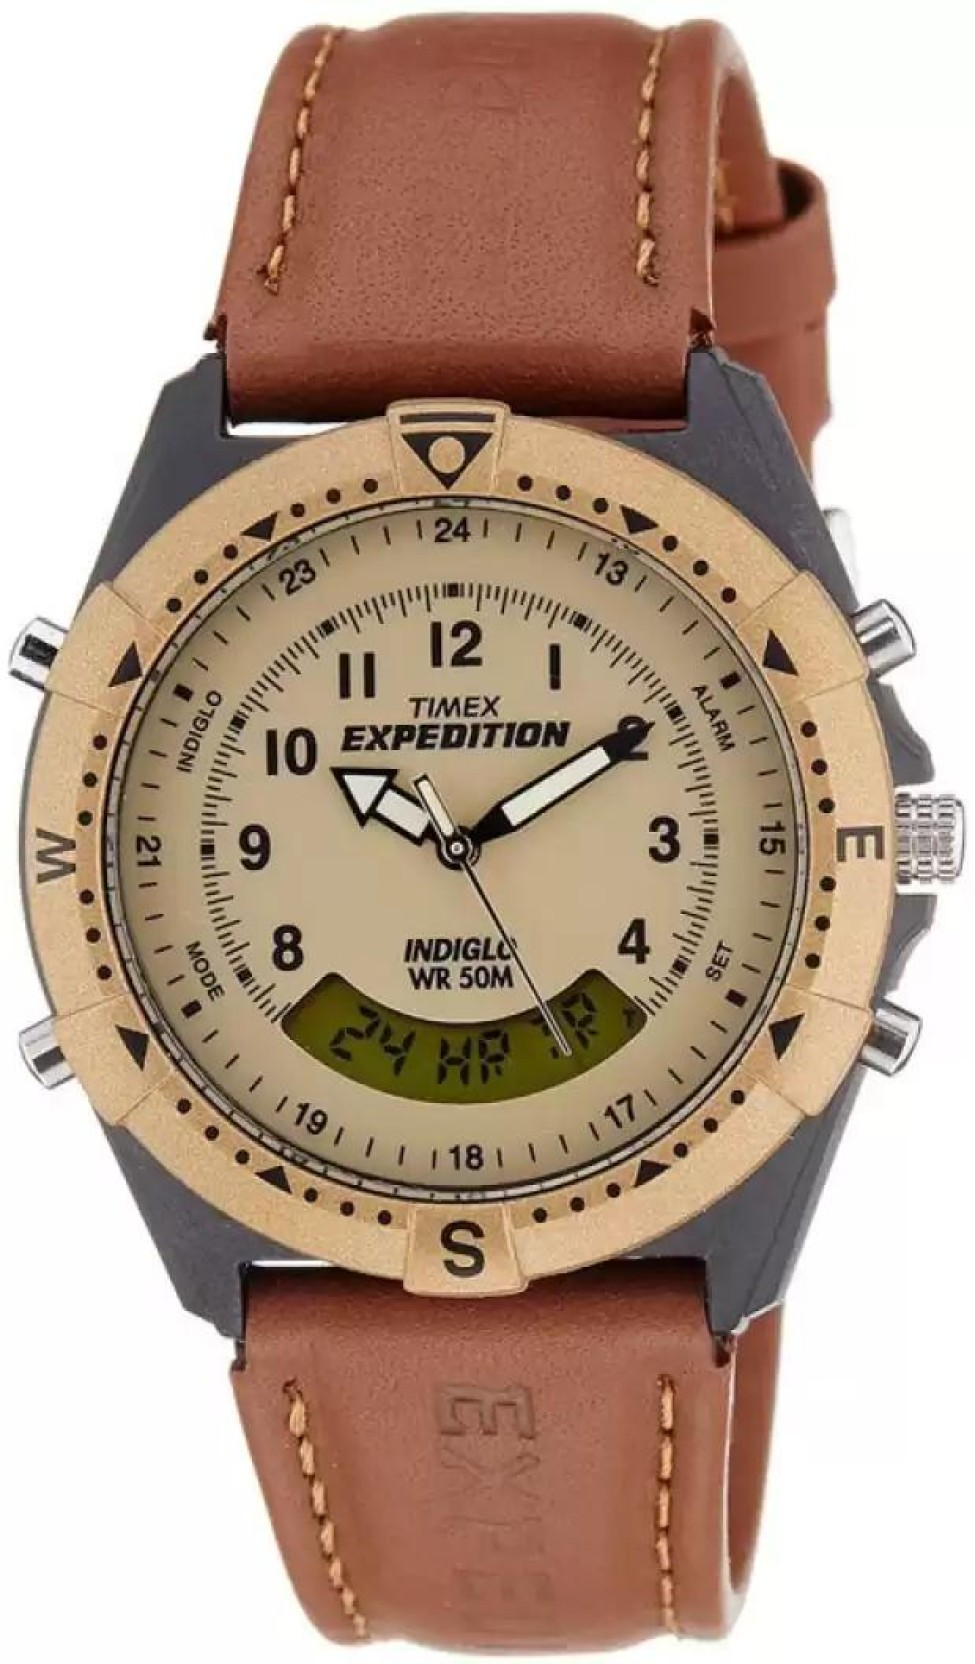 timex mf13 expedition watch for men amp women buy timex